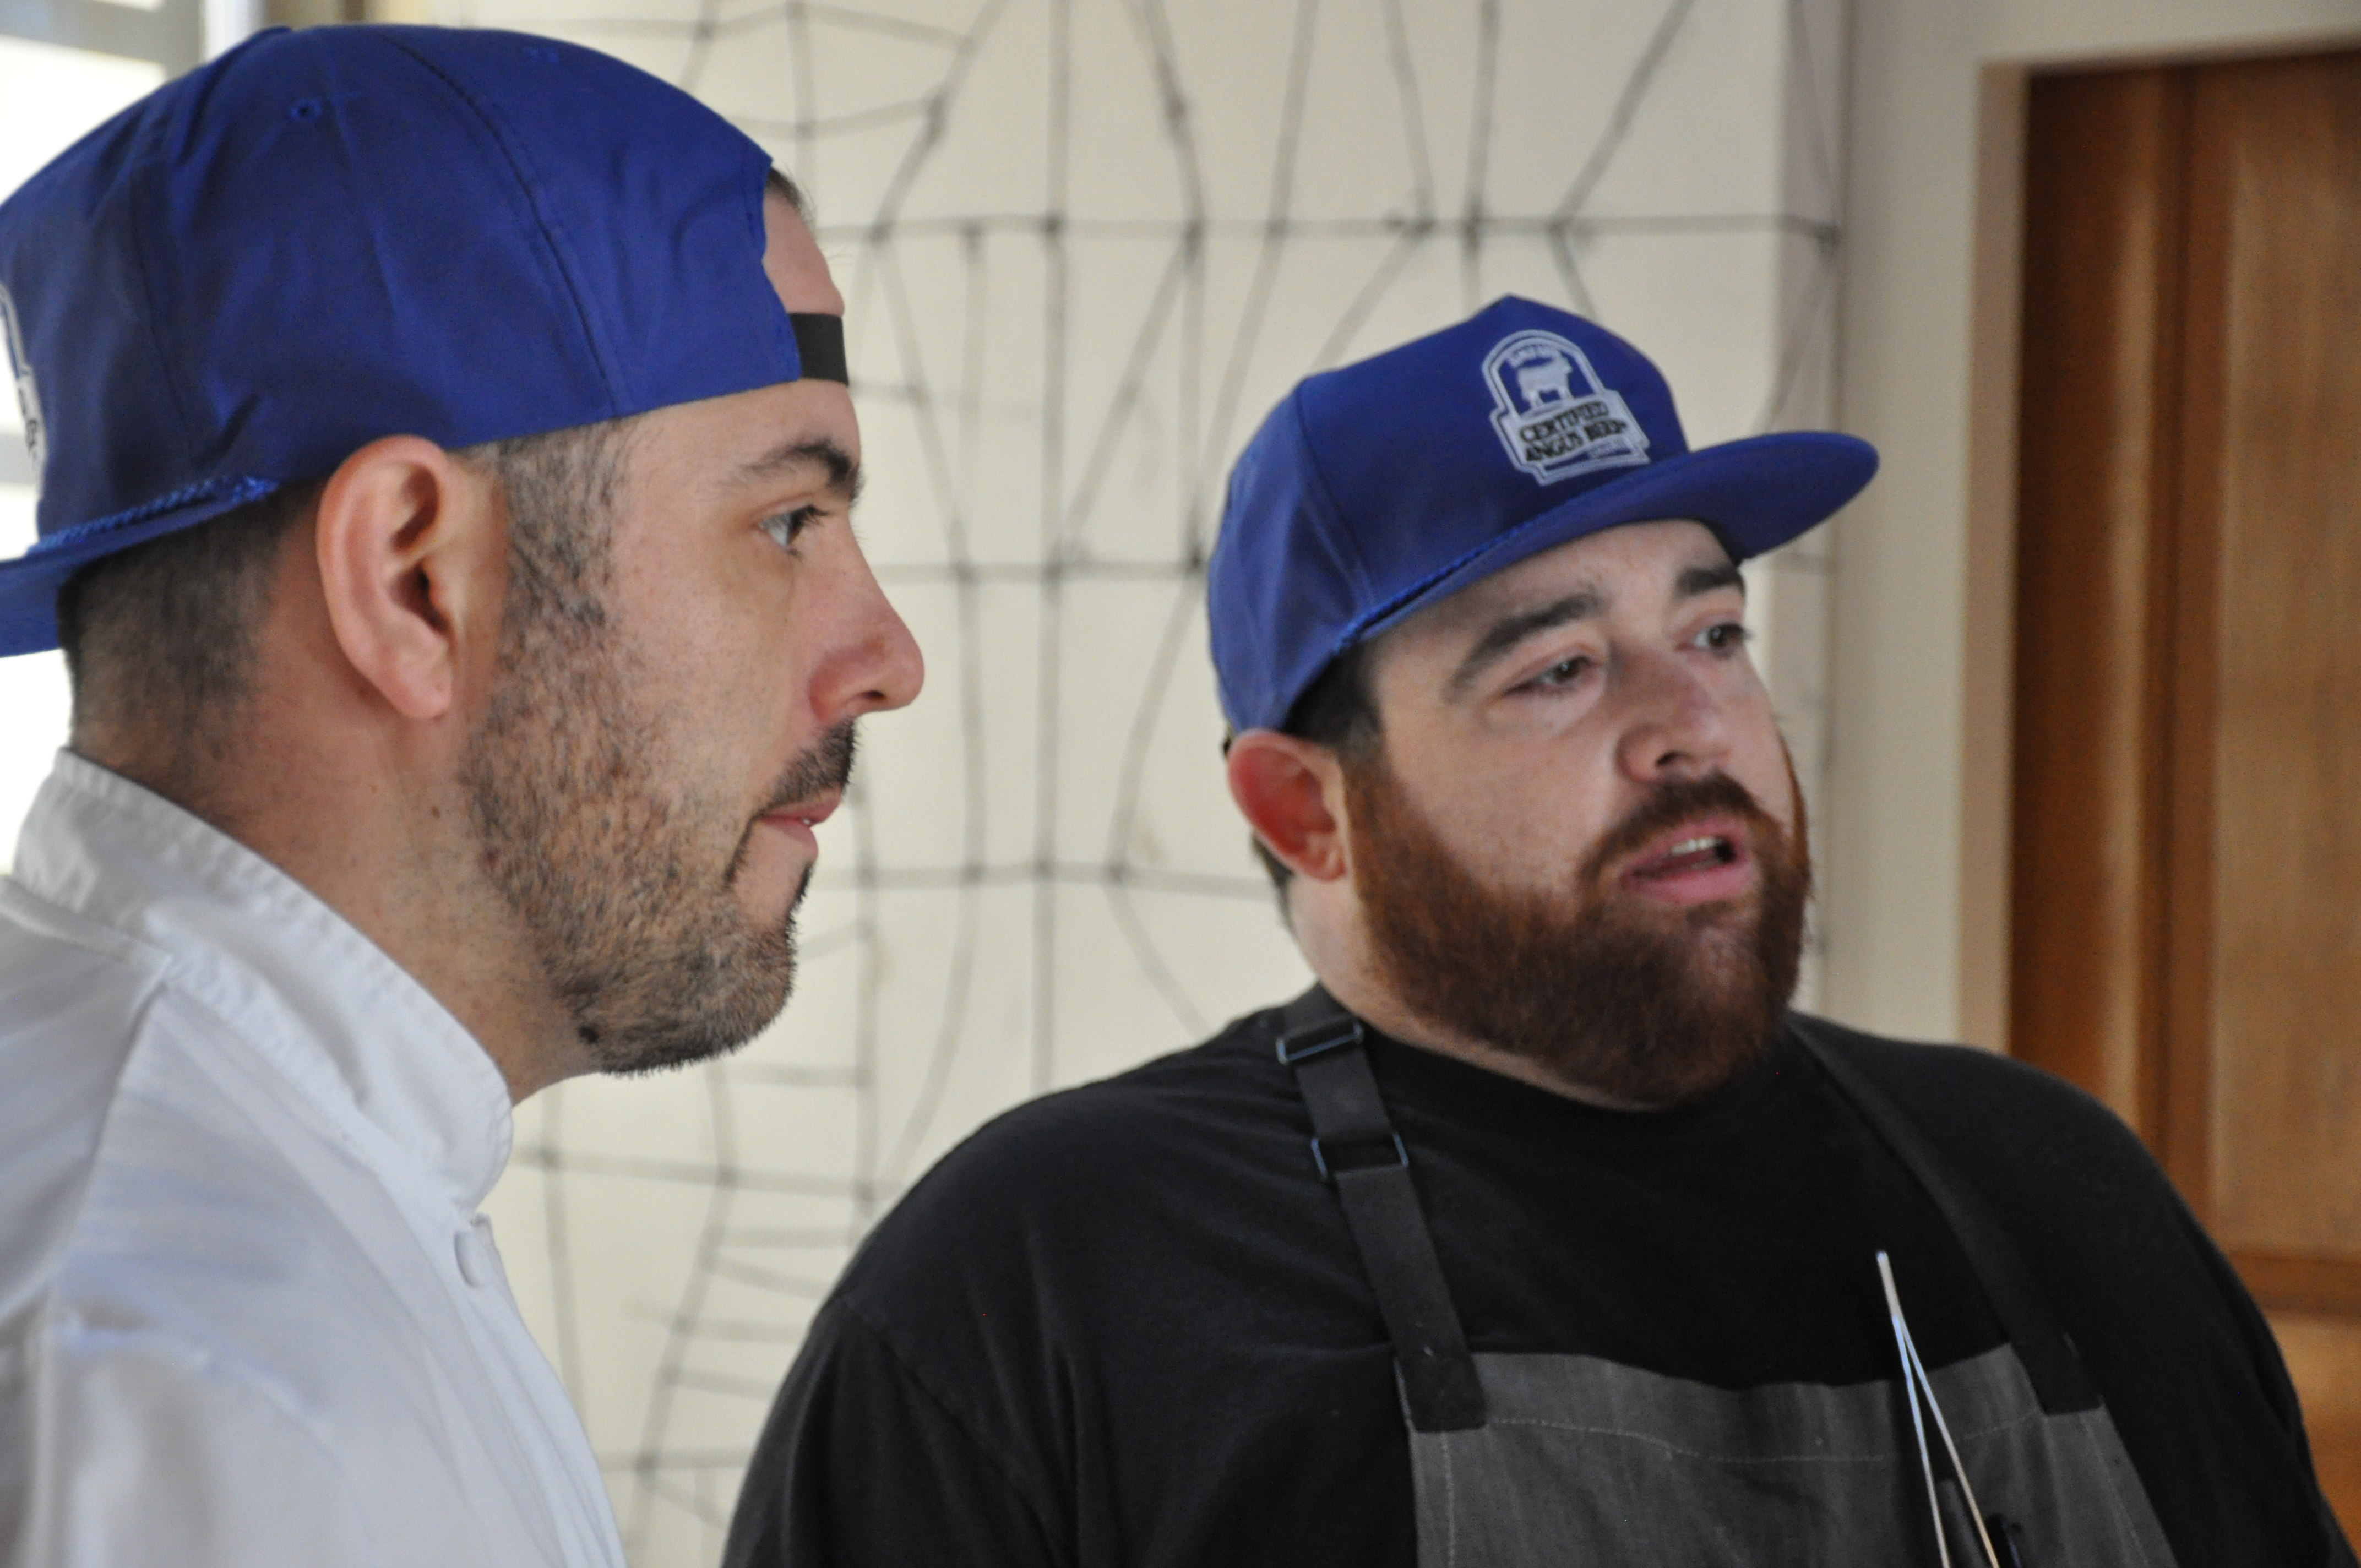 Chefs Mytro and Kocab preparing for a special beef-centric dinner.